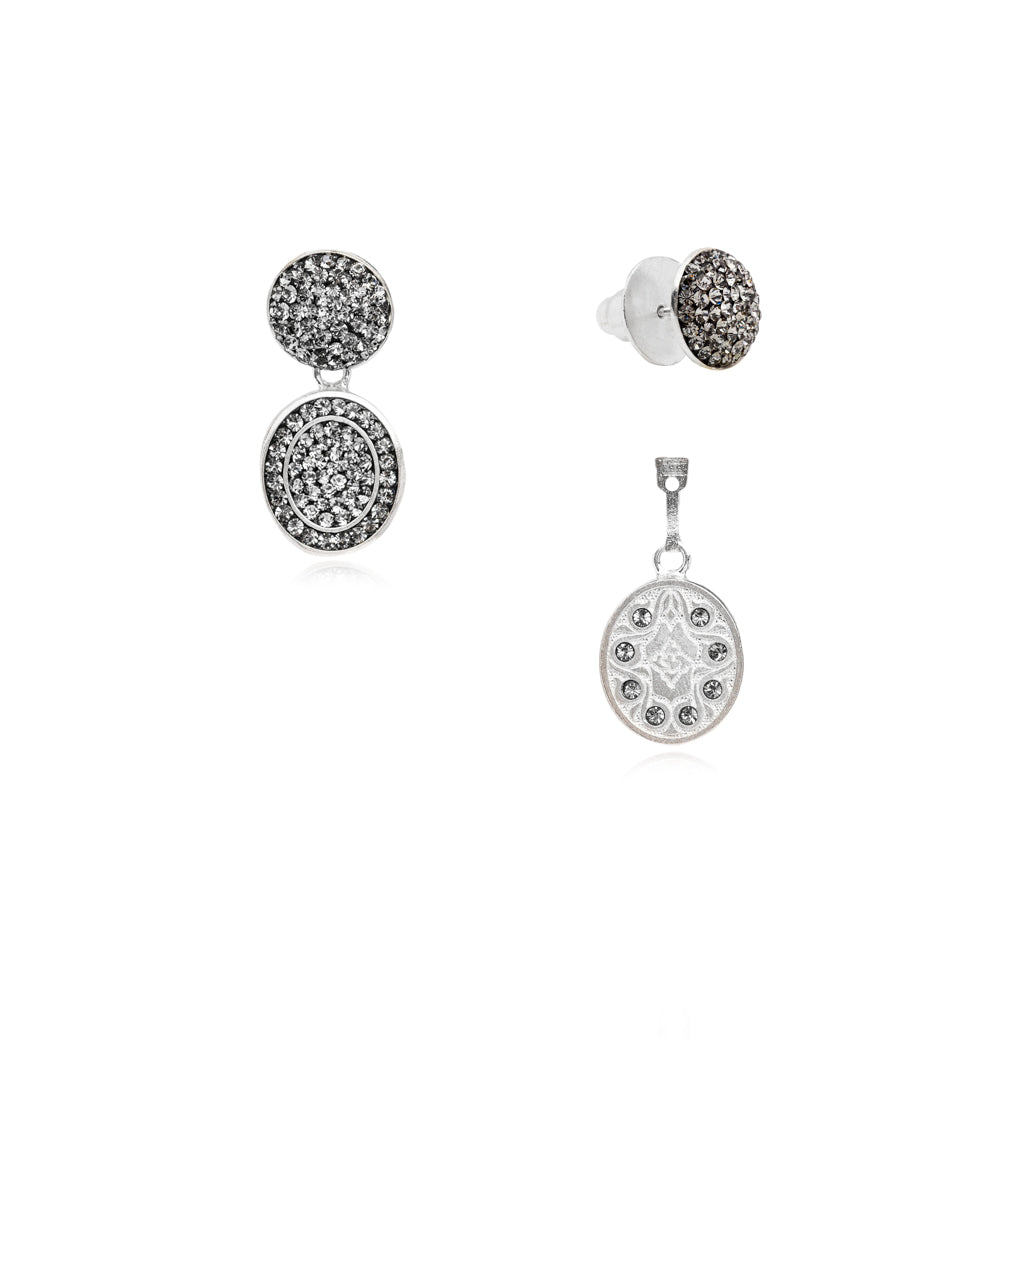 3Way Round & Crystal Oval Drop E Black Diamond & Silver